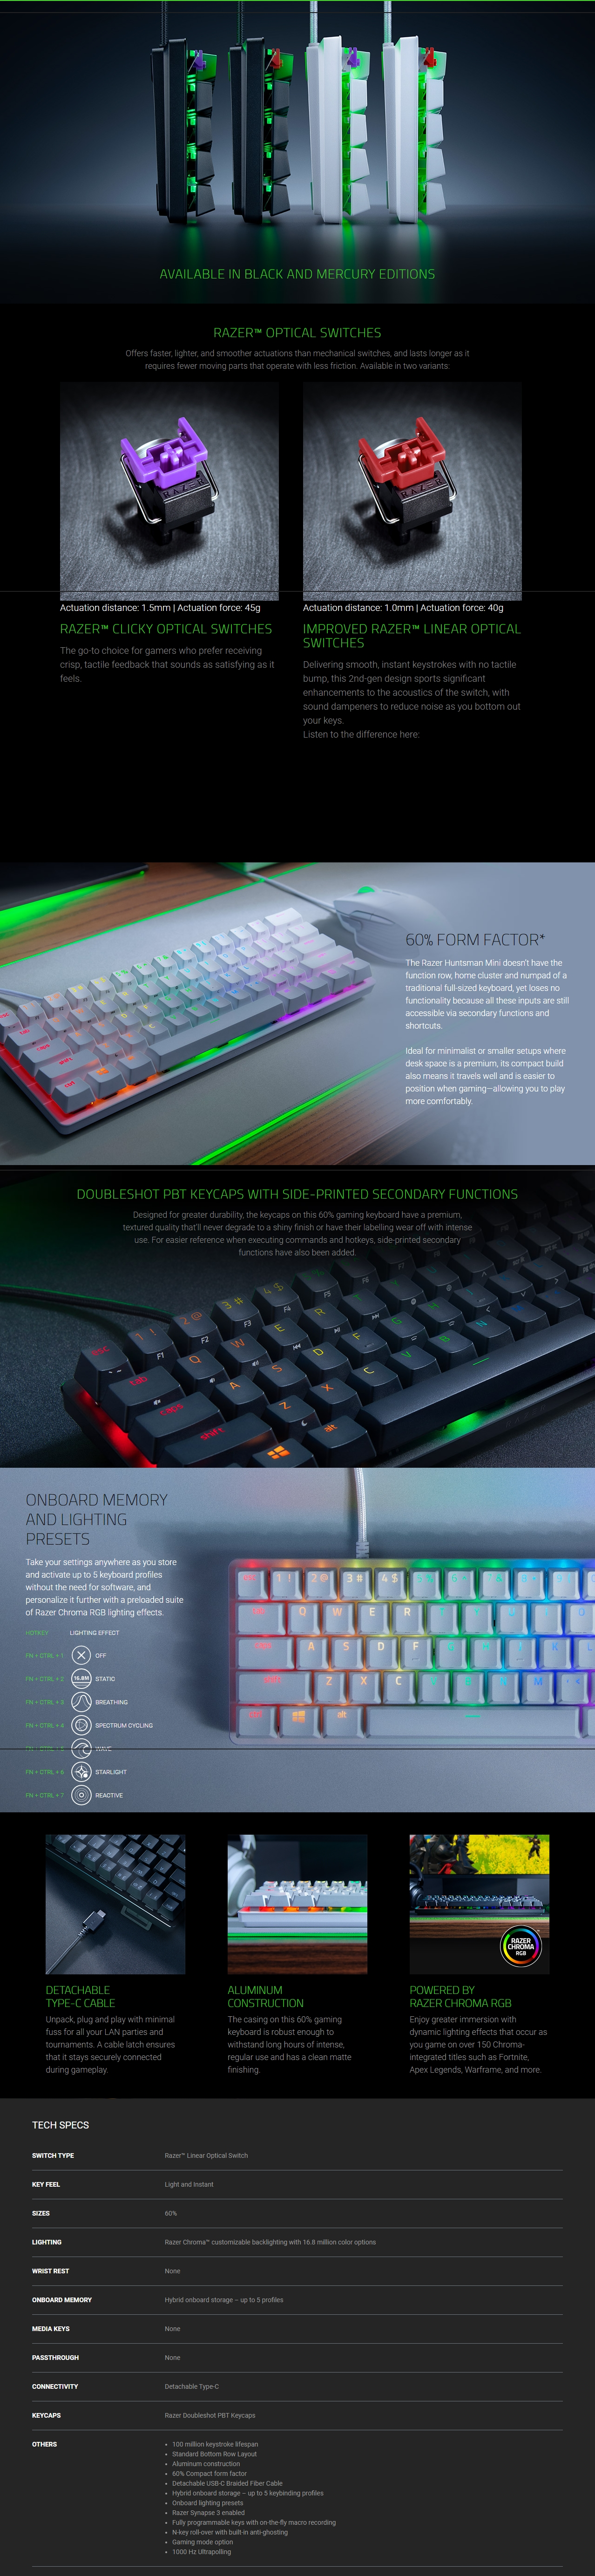 A large marketing image providing additional information about the product Razer Huntsman Mini Opto-Mechanical Switch Chroma Gaming Keyboard - Linear - Additional alt info not provided